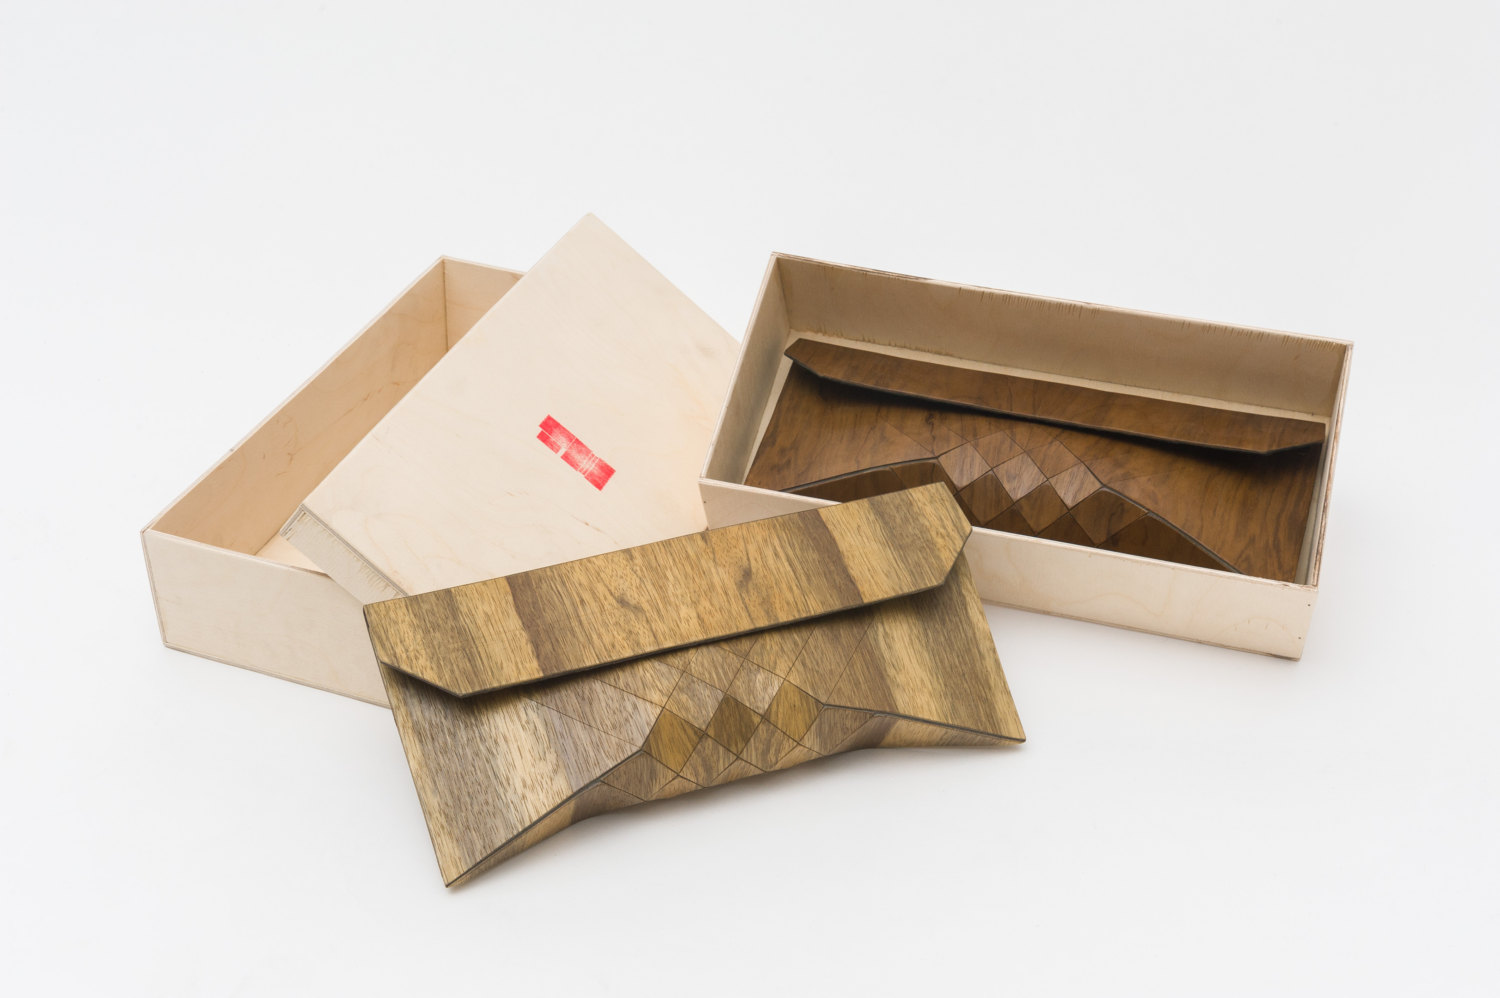 awesome-design-ideas-Wood-Clutch-TeslerMendelovitch-5